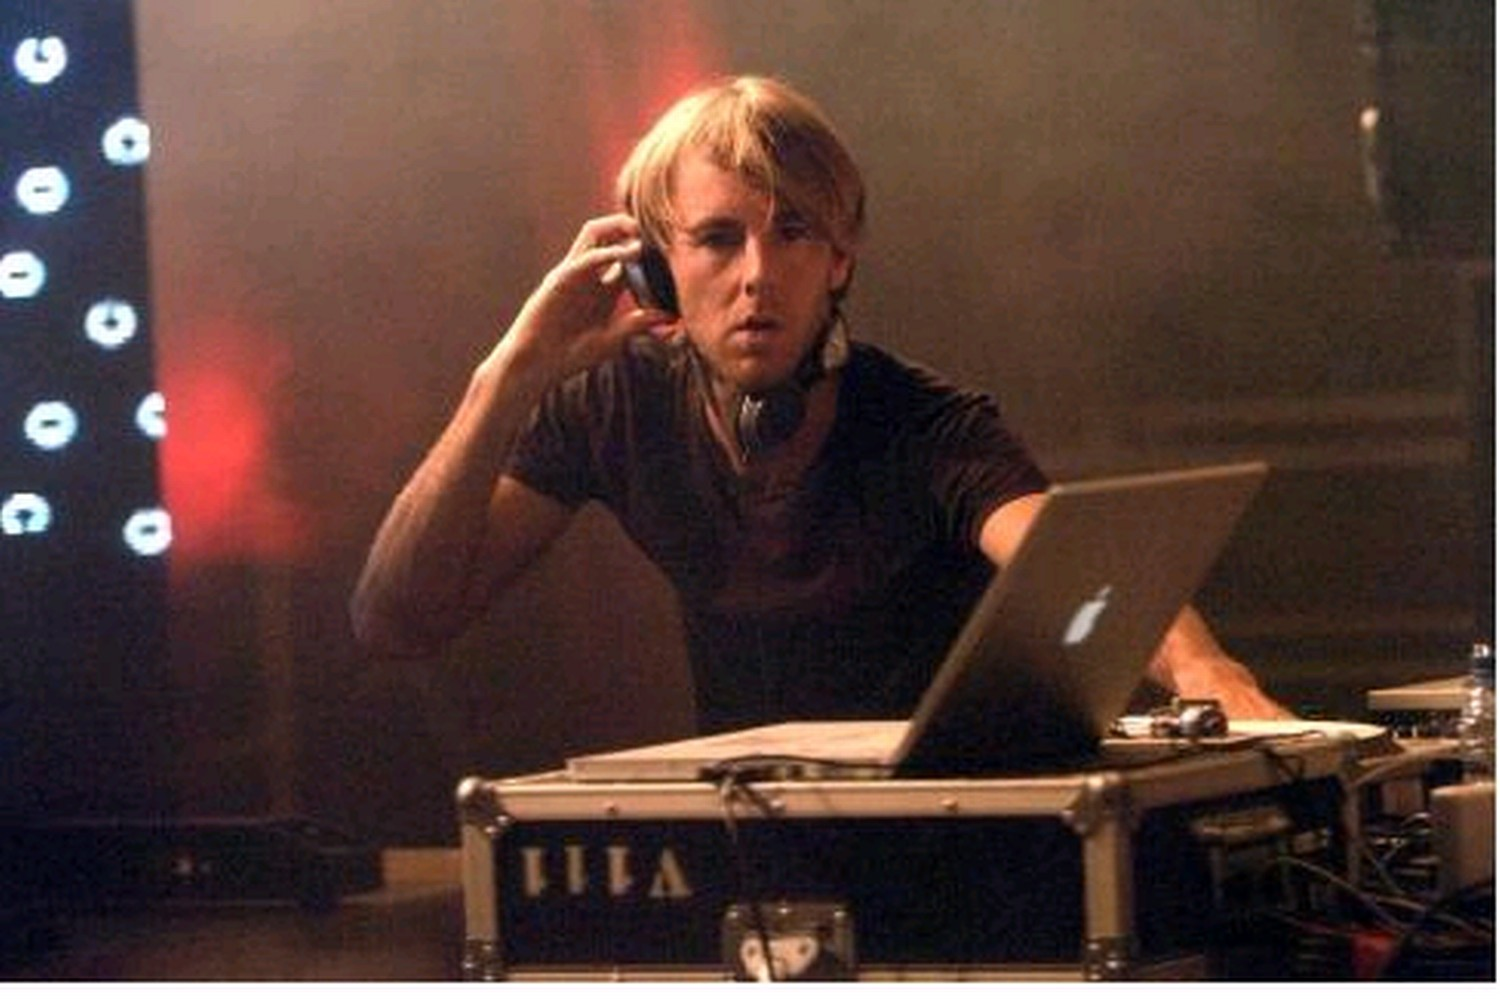 Richie Hawtin - Live @ Helene Beach (Smirnoff Sound Collective Camp) - 27-Jul-2016